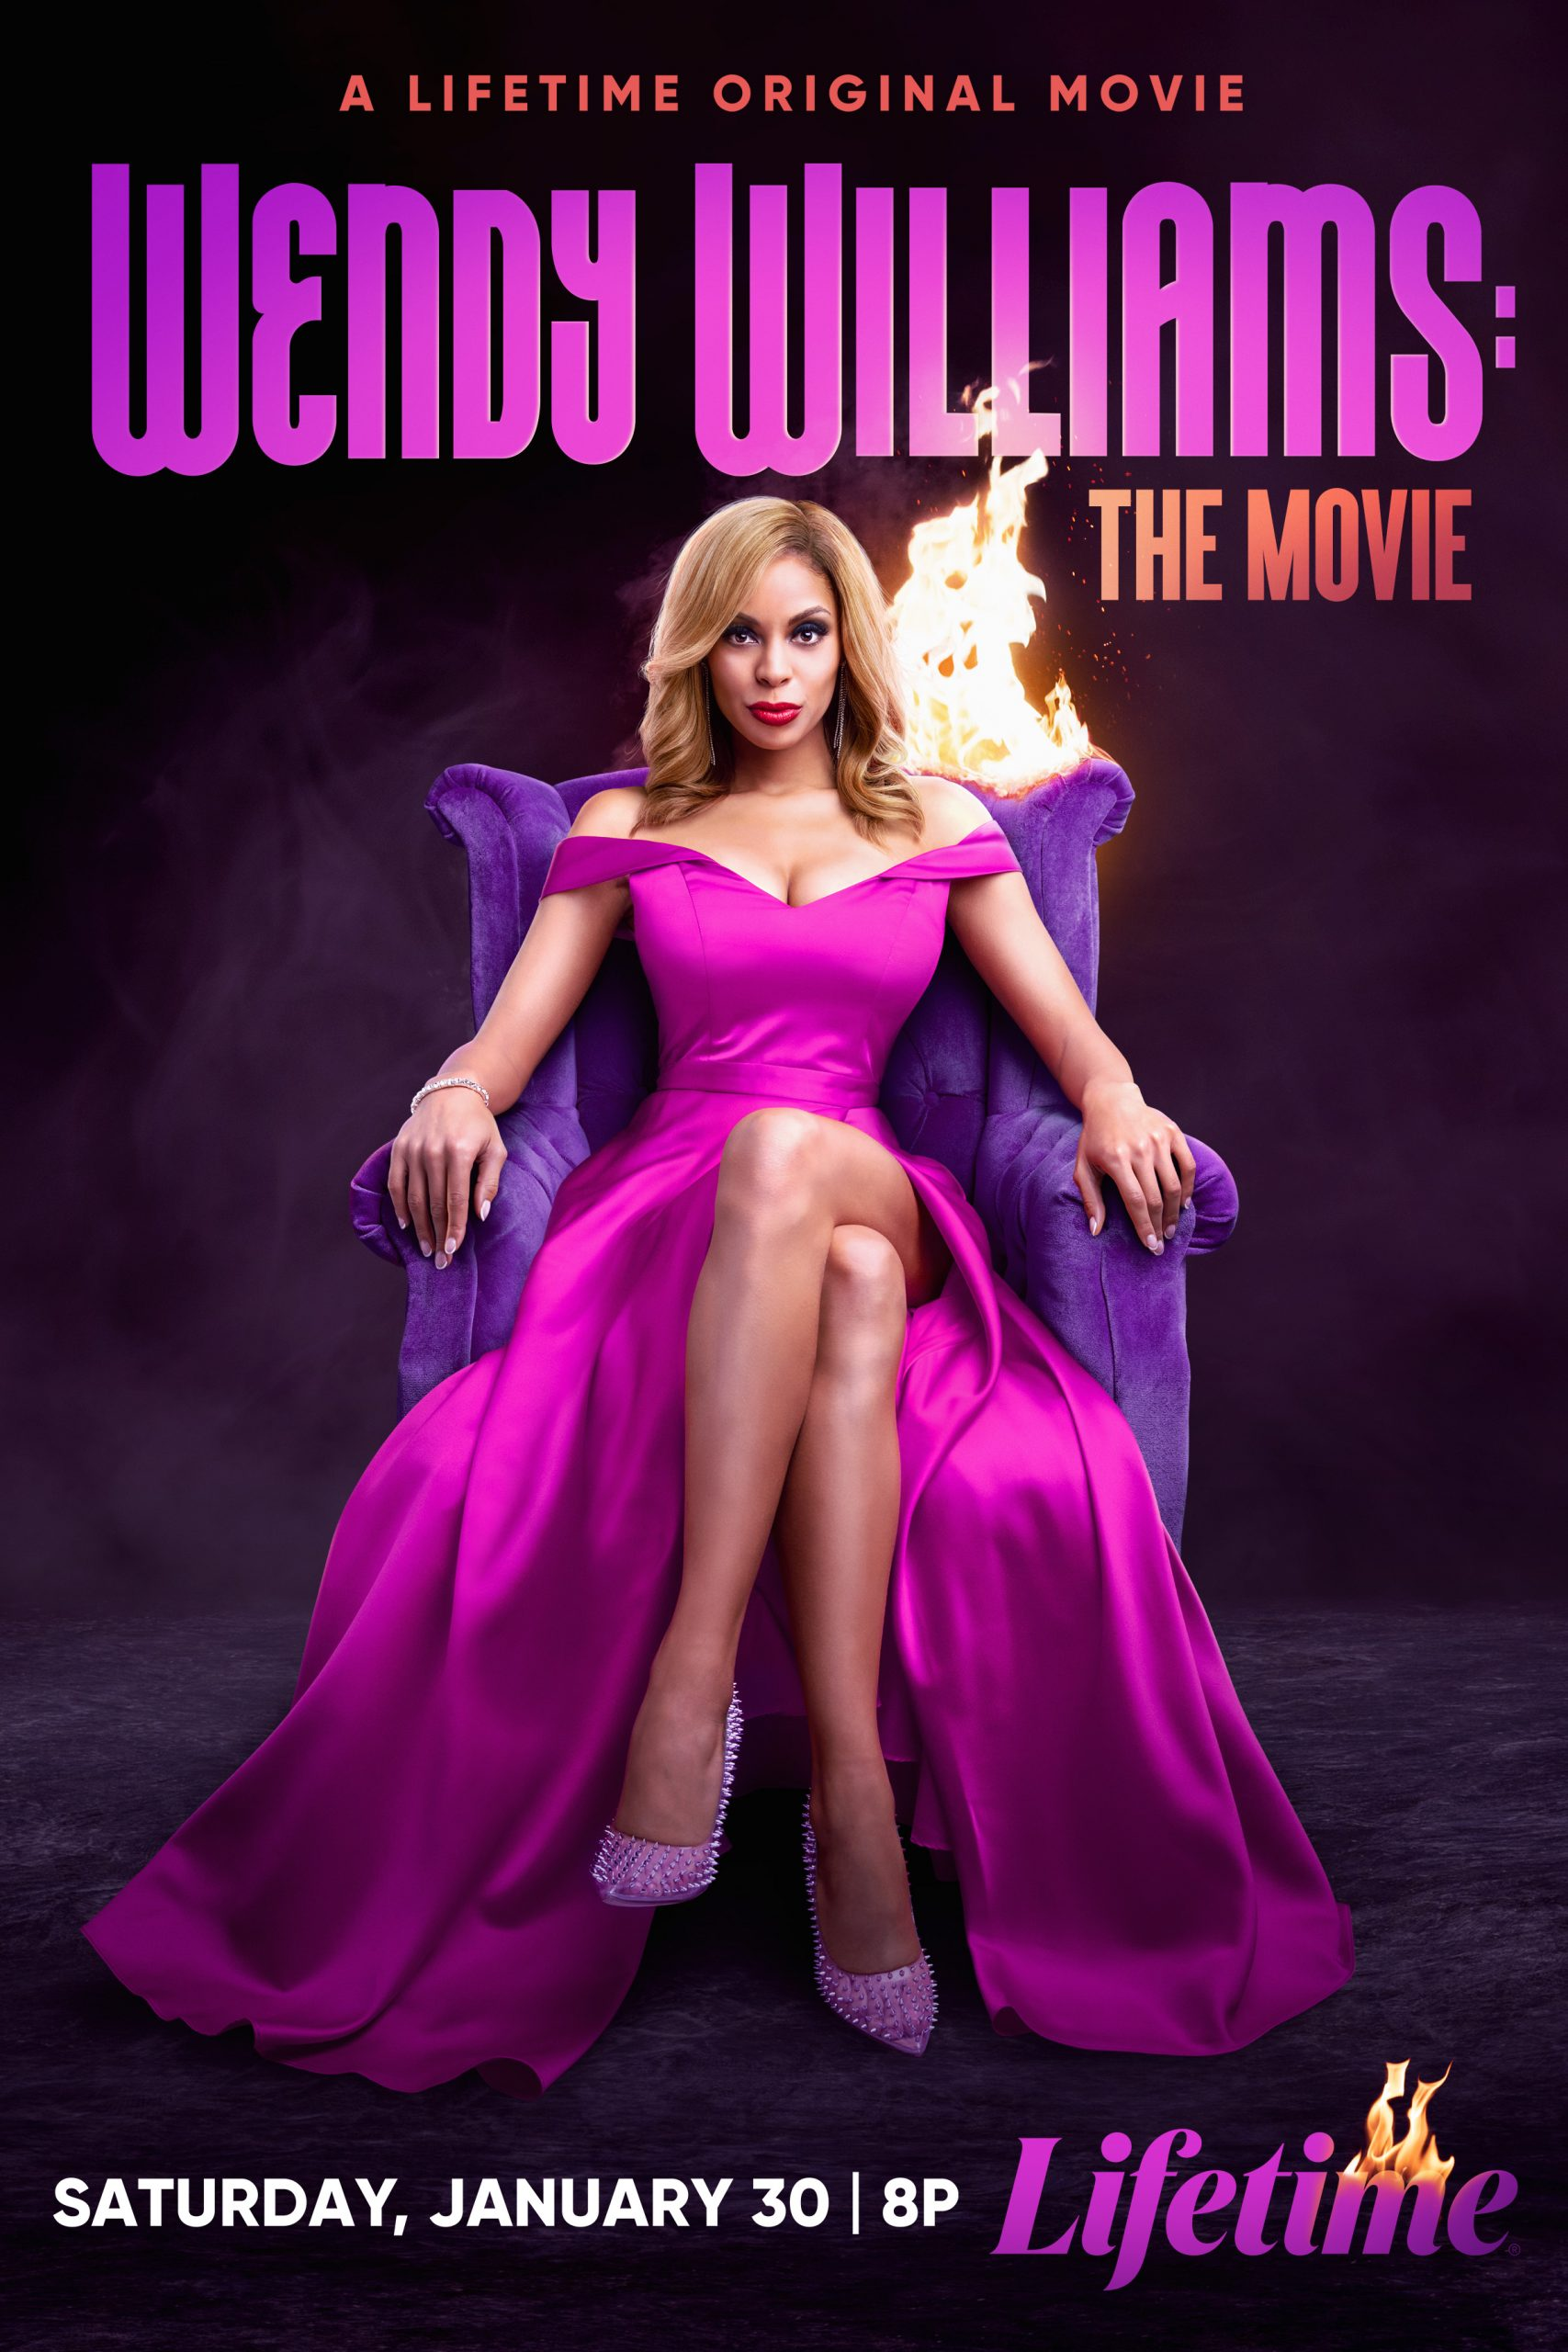 First Look: 'Wendy Williams The Movie' Starring Ciera Payton